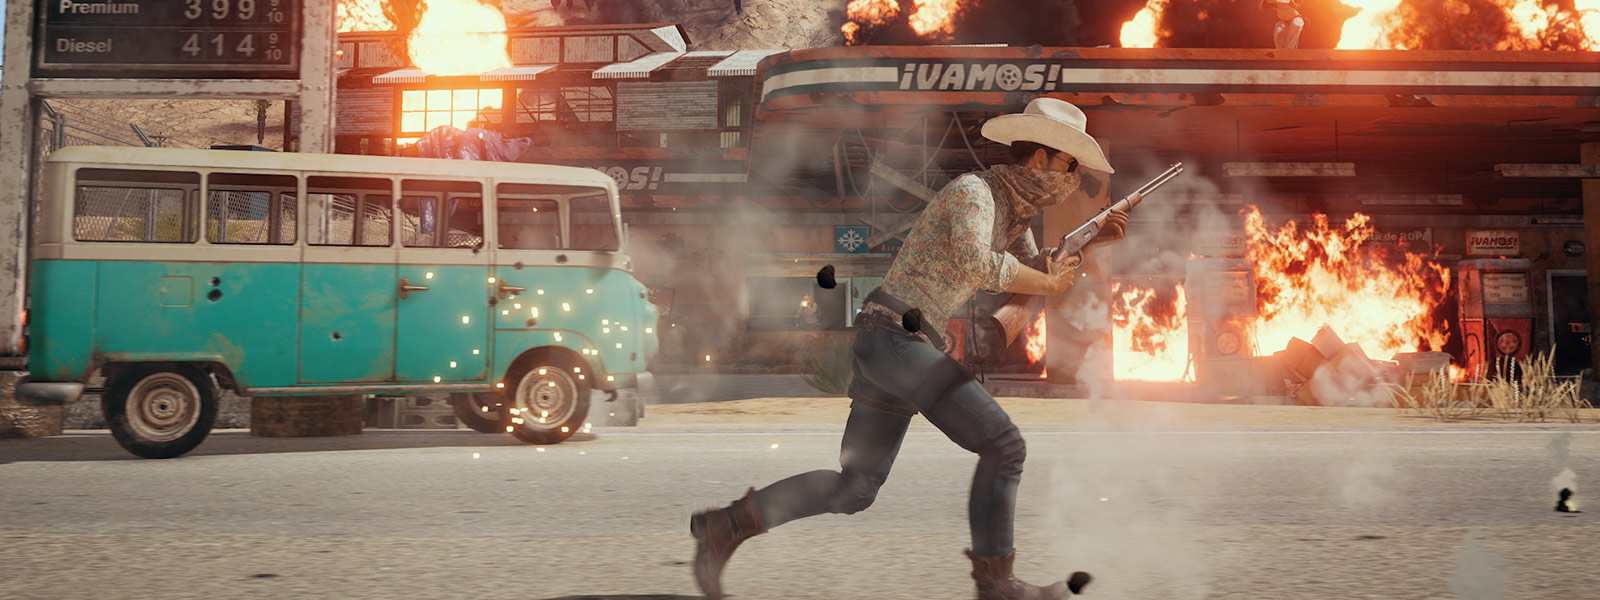 A man in a cowboy outfit holding a rifle running infront of exploding buildings